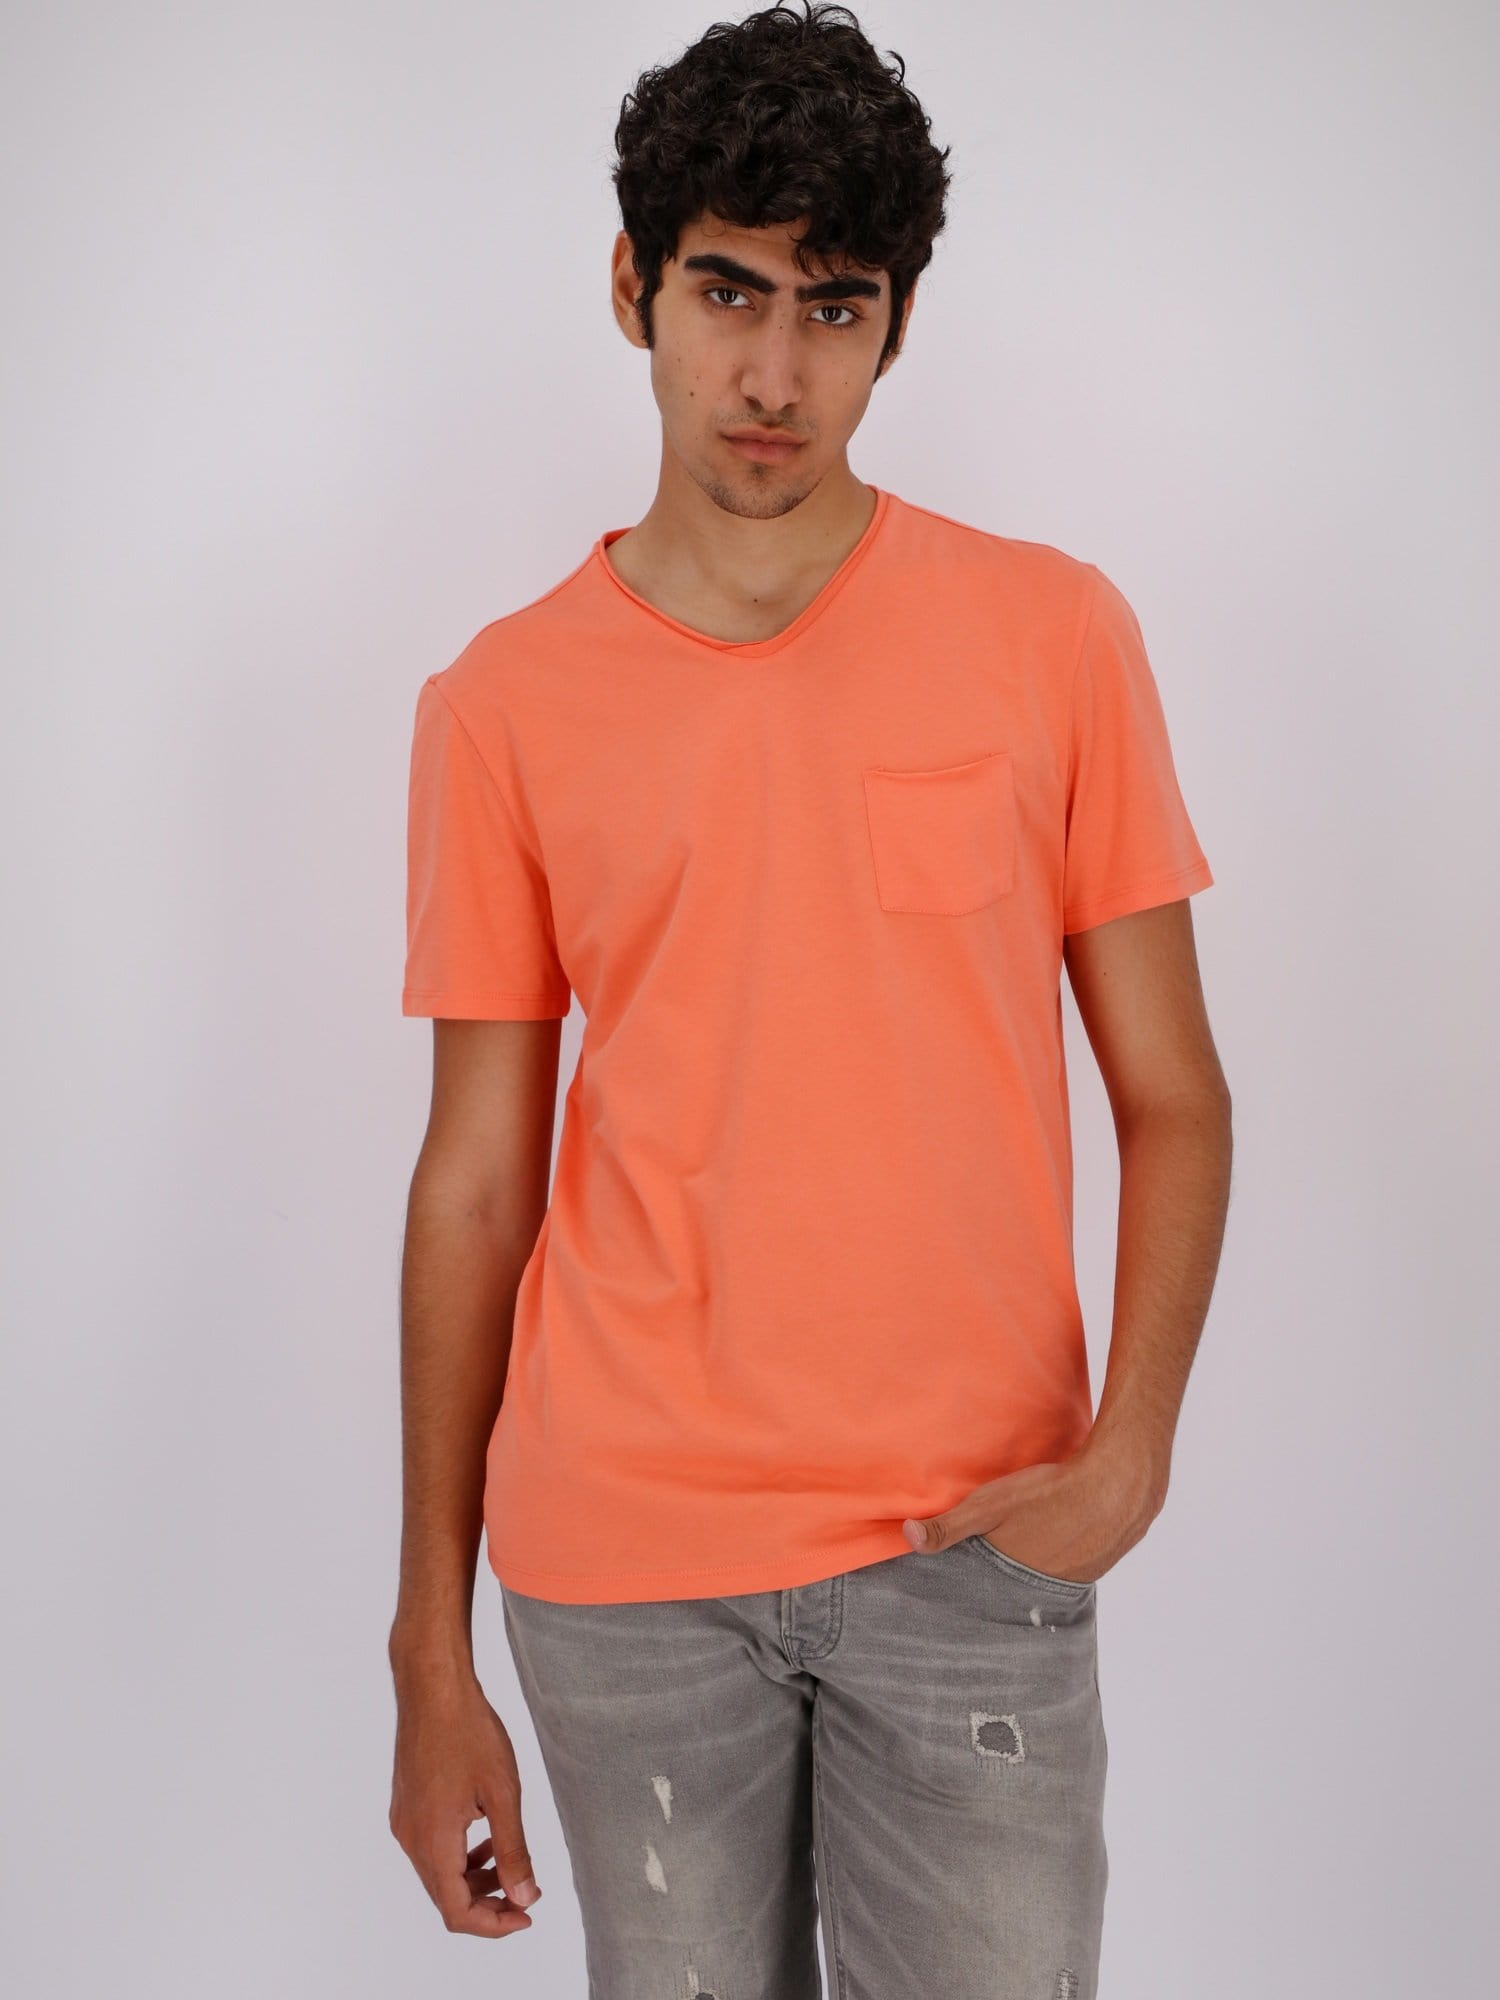 OR T-Shirts Apricot / S Chest Pocket V-Neck Solid T-Shirt